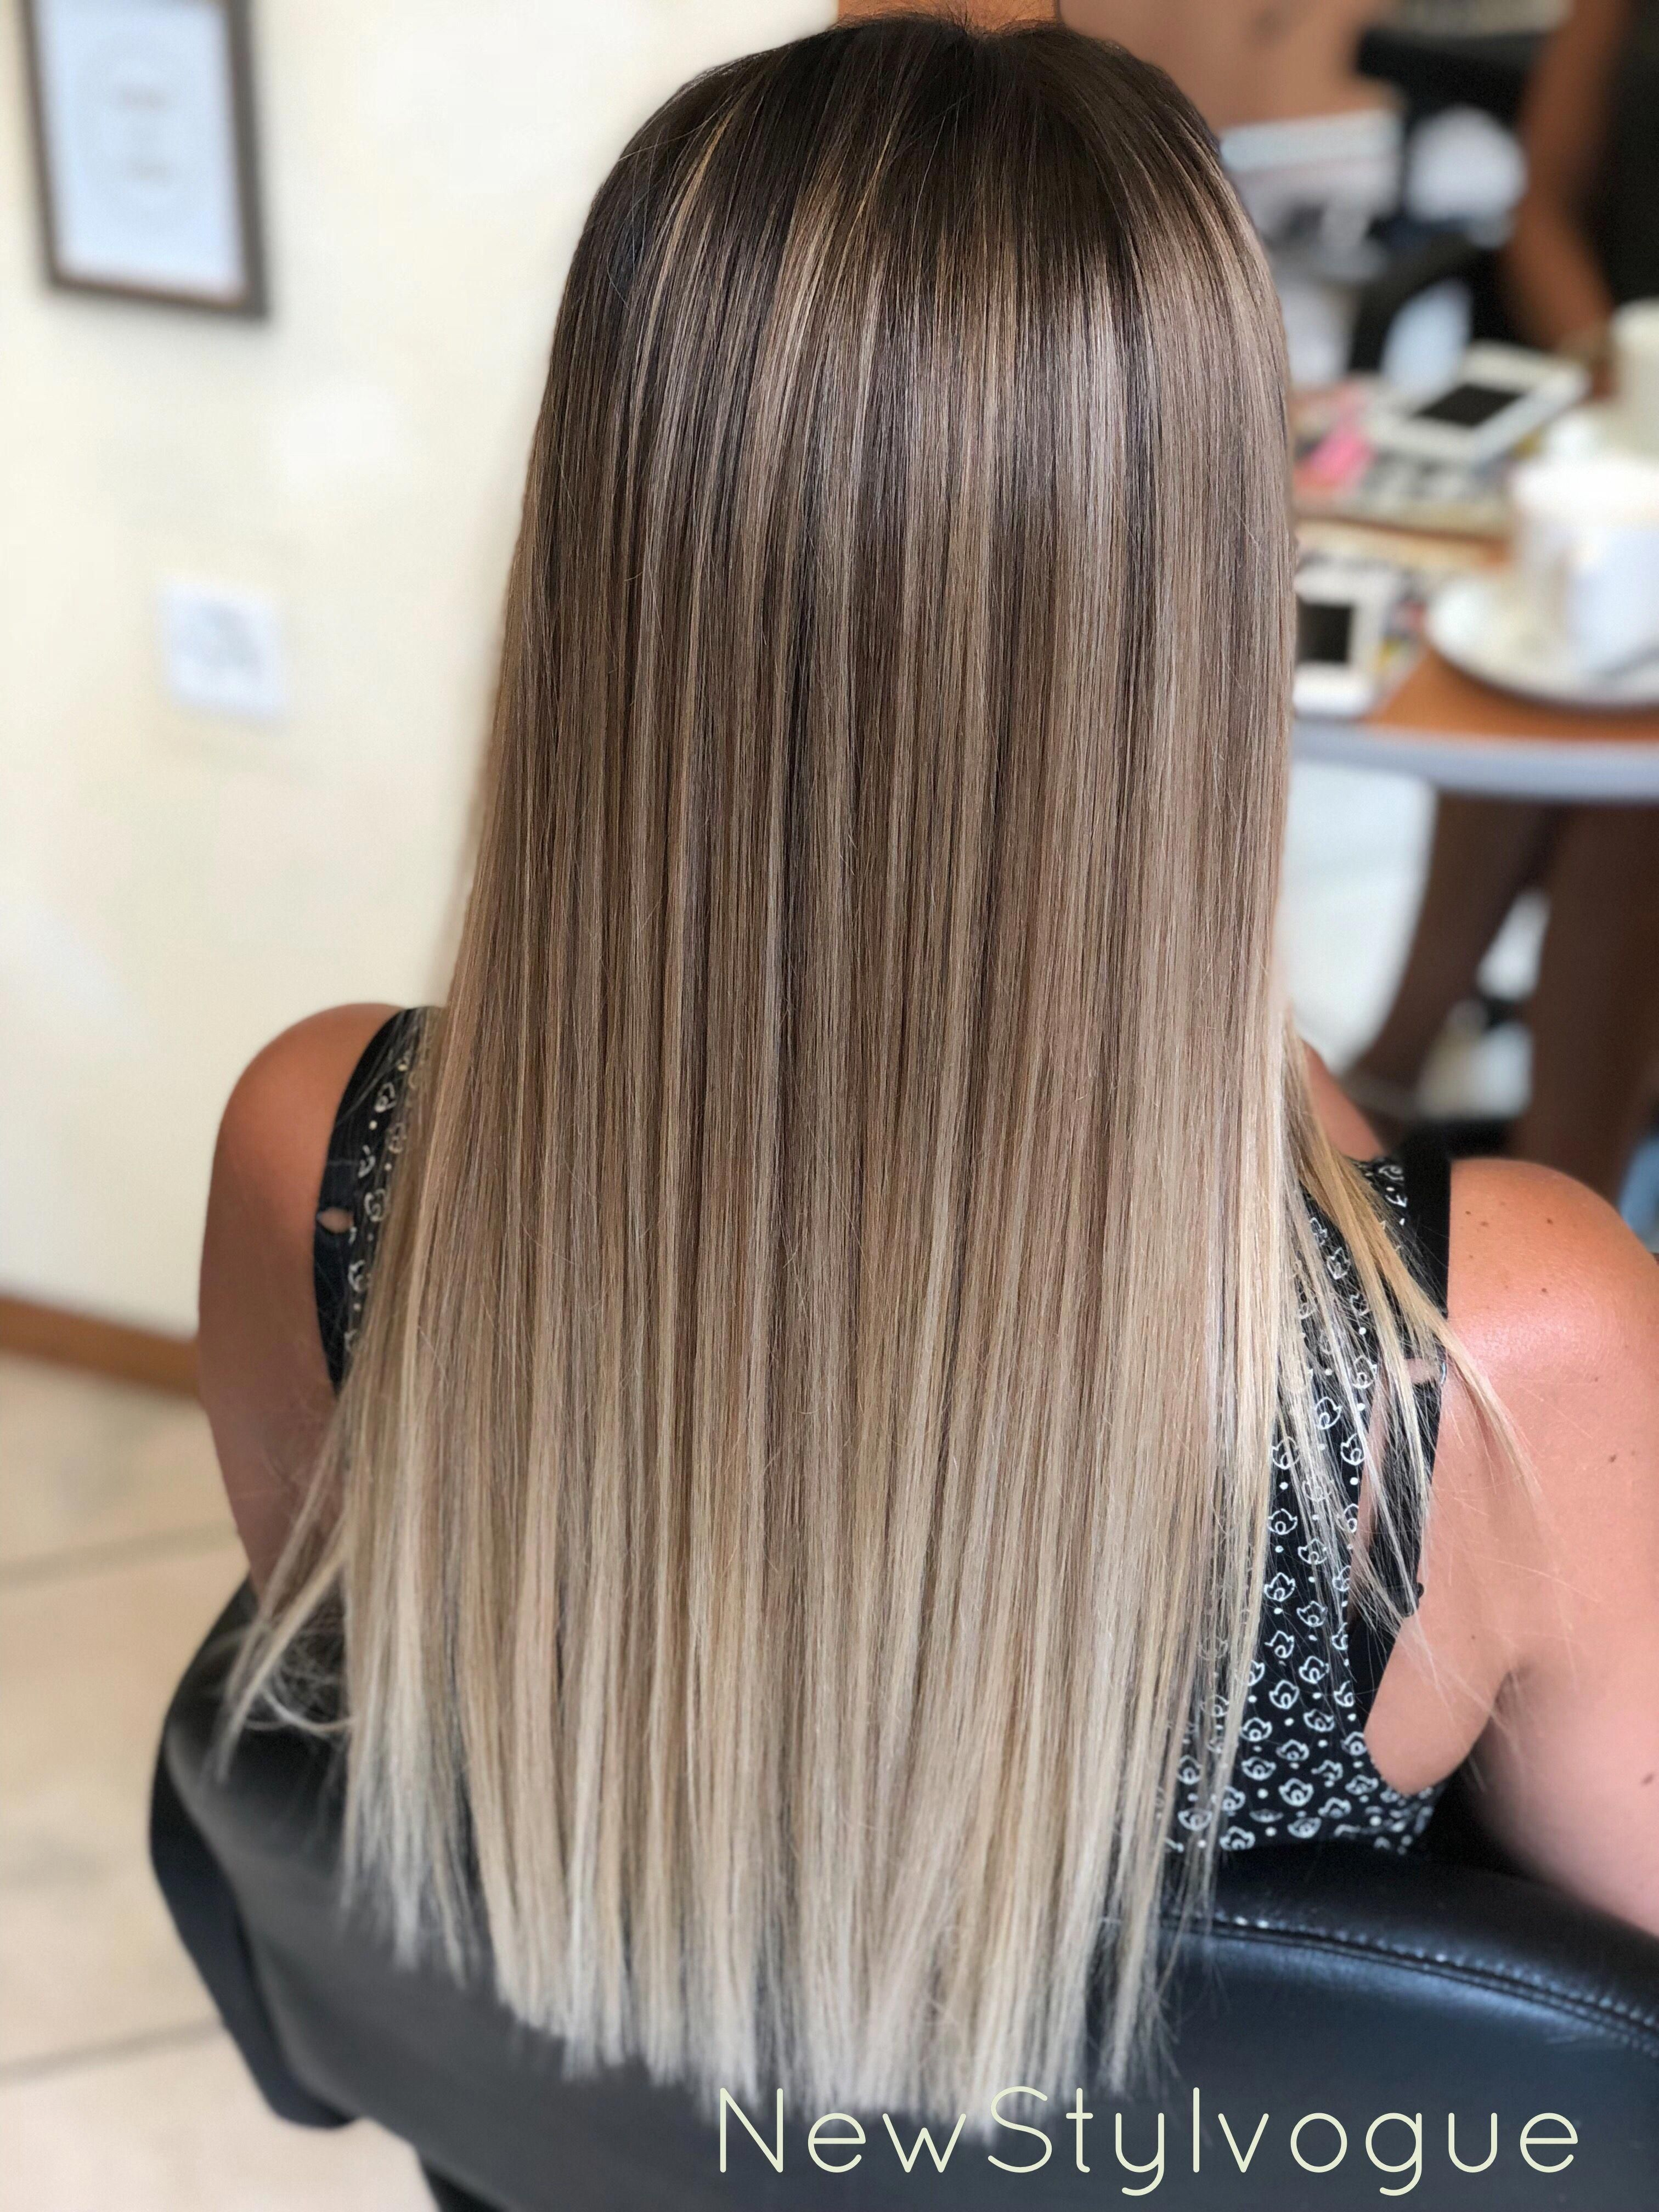 Shadow Sweep Ombrepixiecut Ashblondebalayage Shadow Sweep Ombrepixiecut H In 2020 Balayage Straight Hair Ombre Hair Blonde Hair Styles